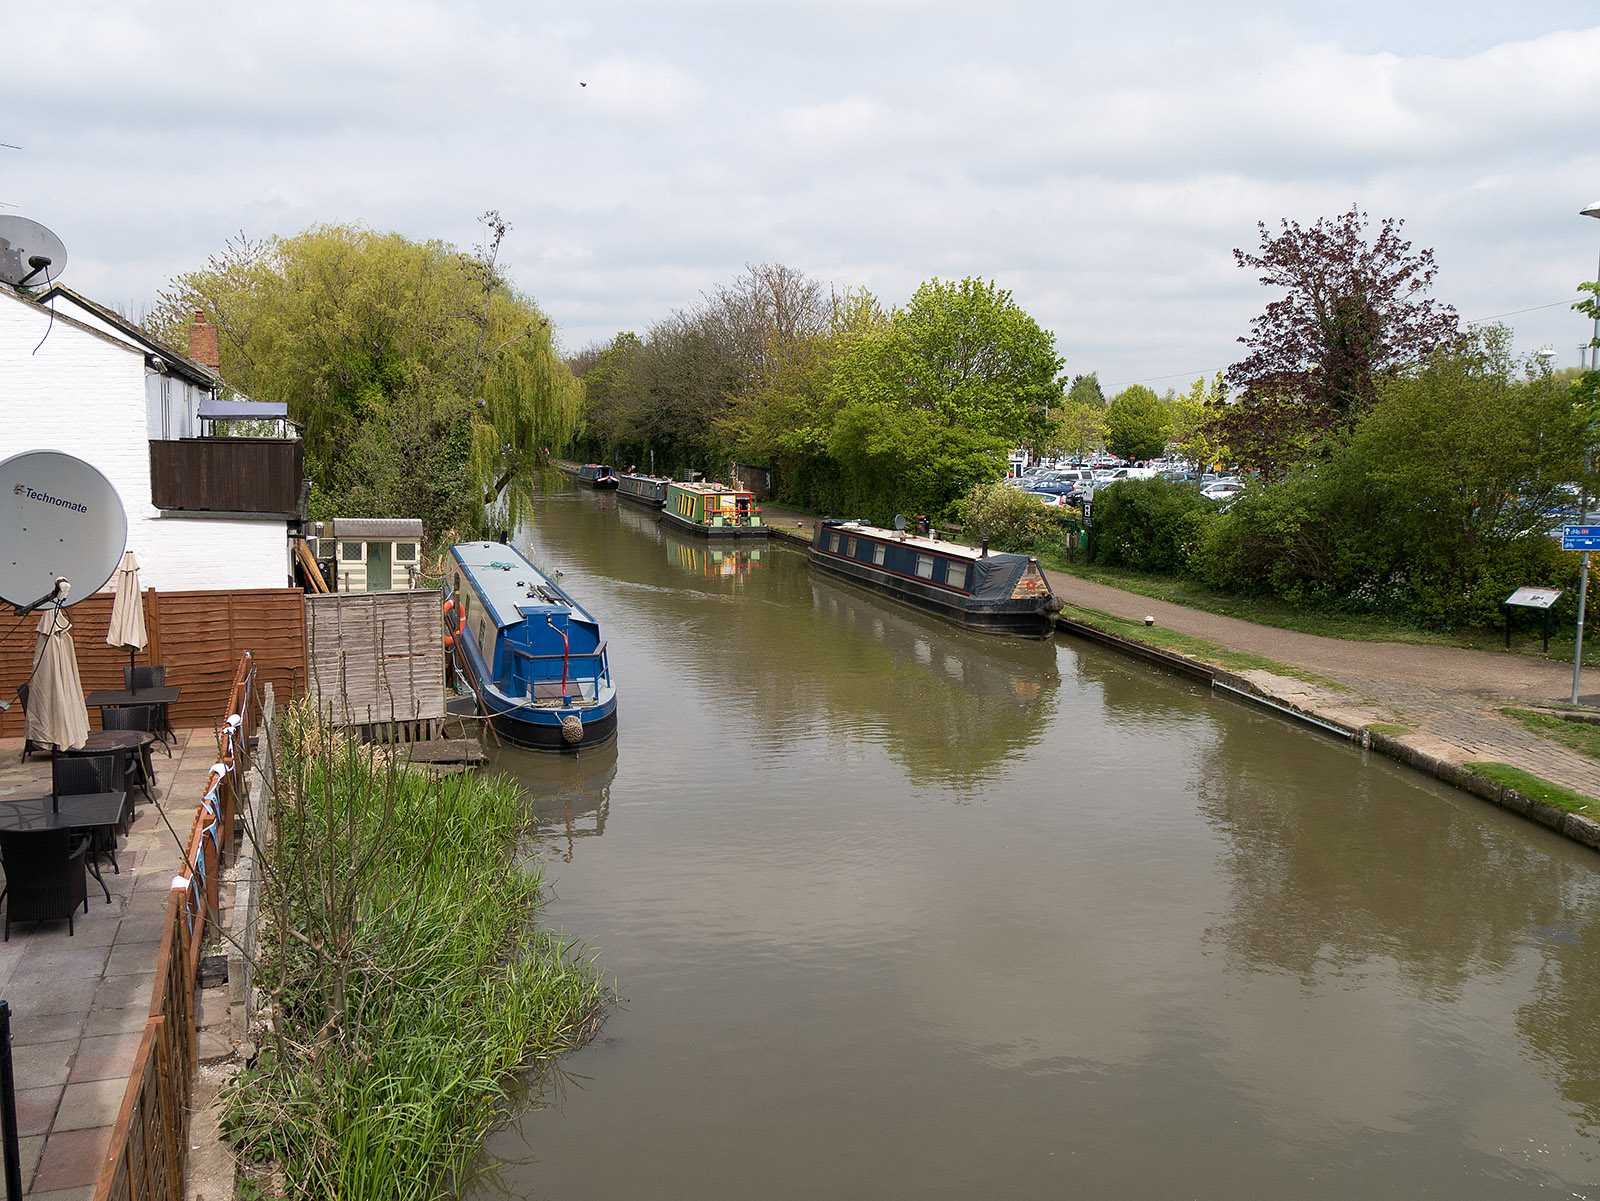 Looking north from the bridge at Linslade